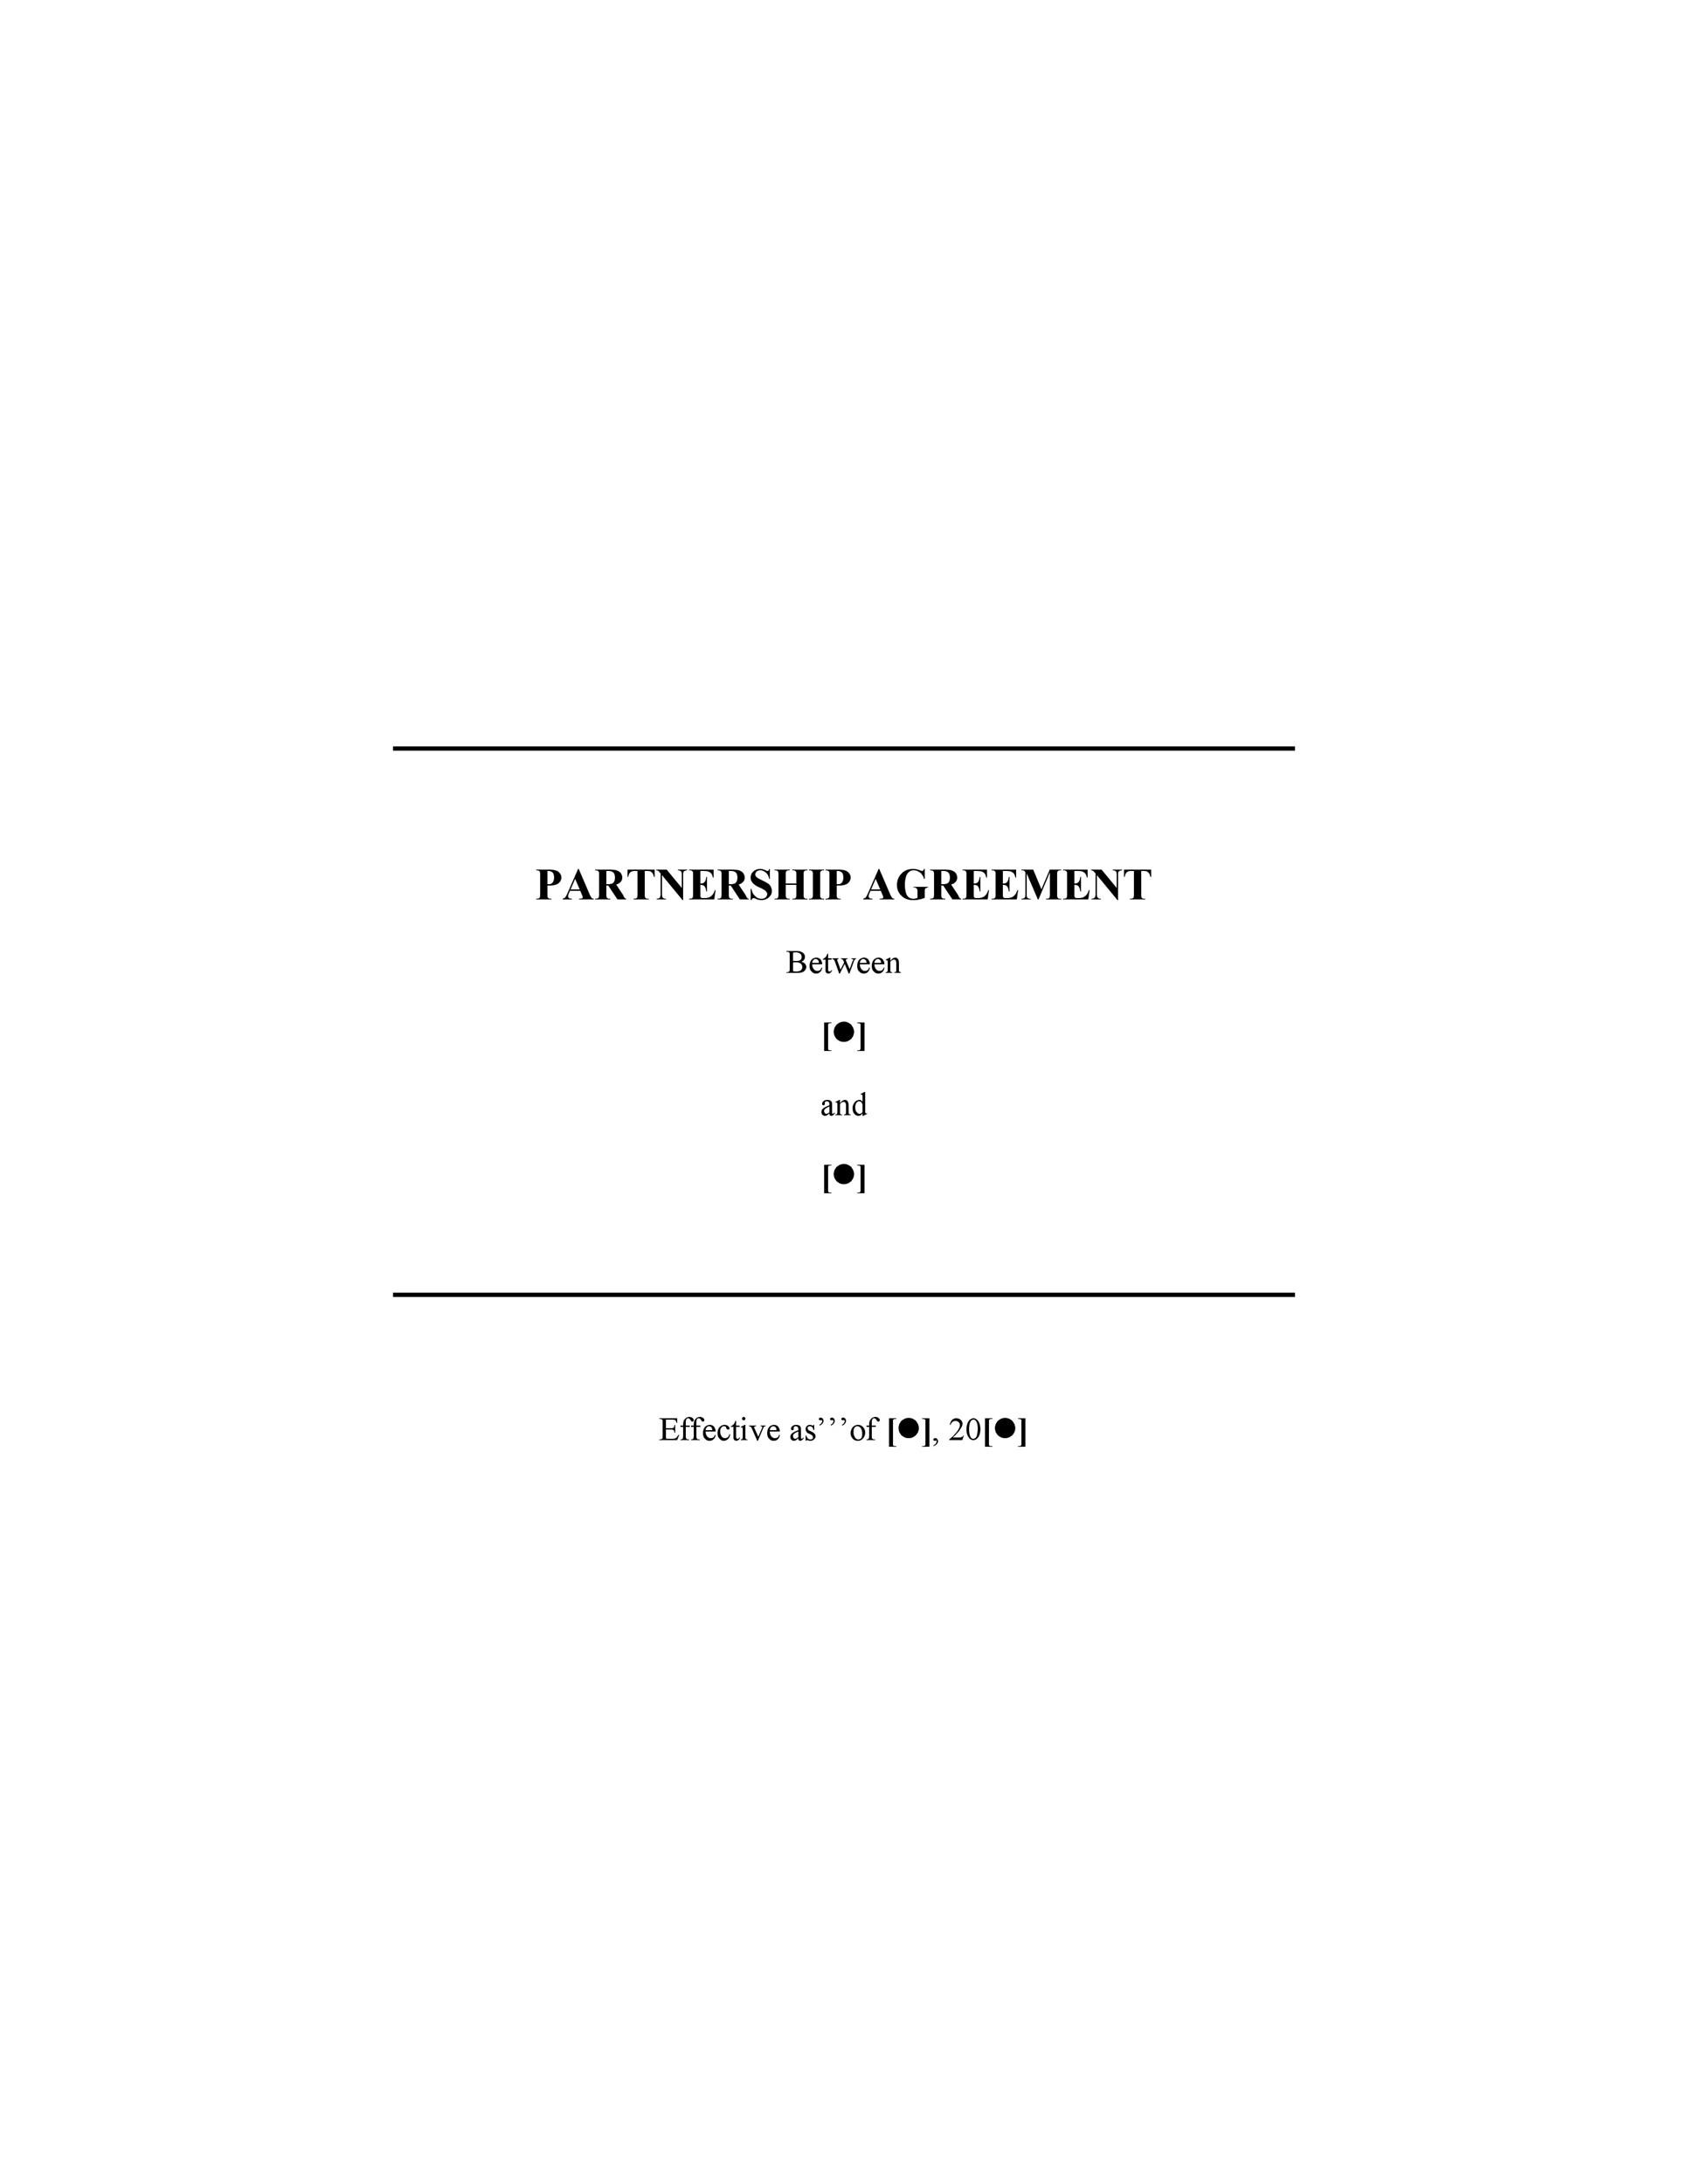 FREE Partnership Agreement Templates Business General - Generic partnership agreement template